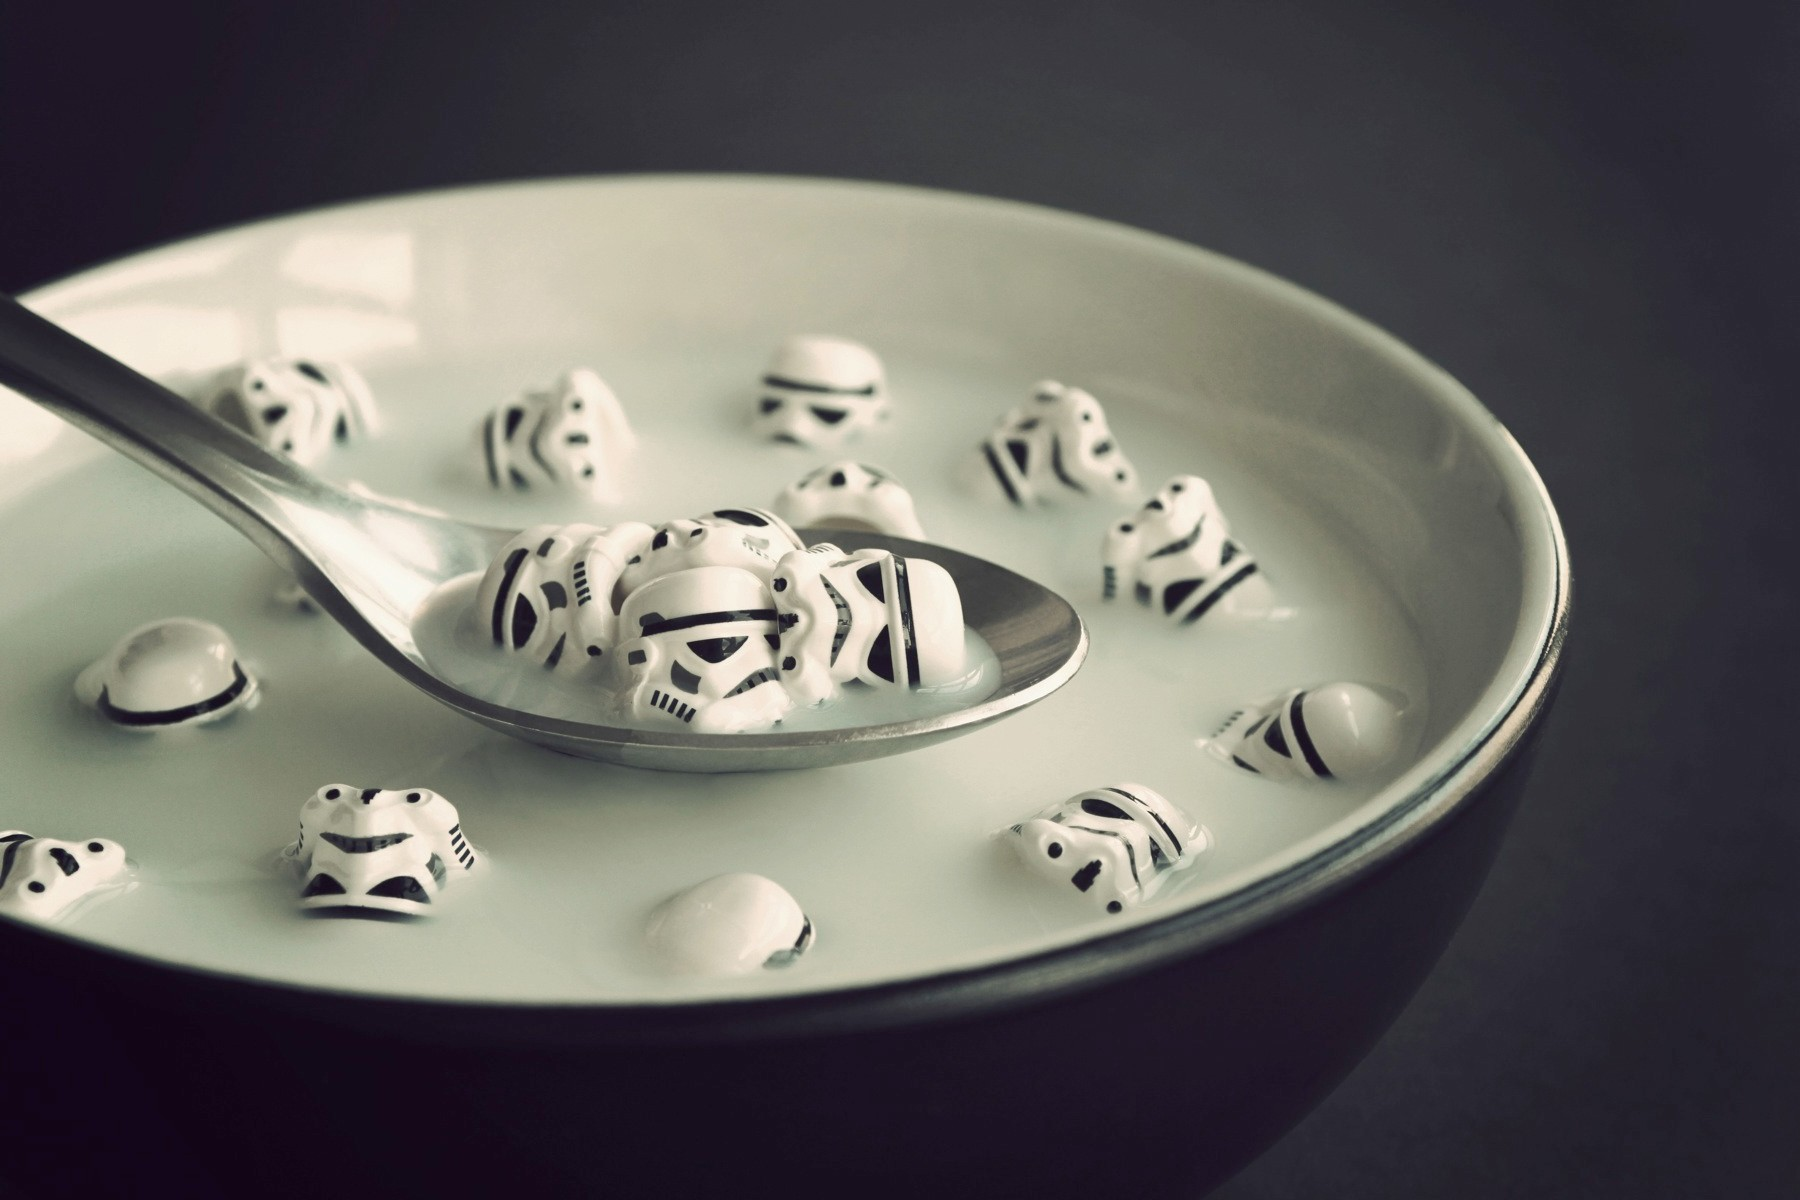 General 1800x1200 Star Wars Star Wars Humor spoon bowls